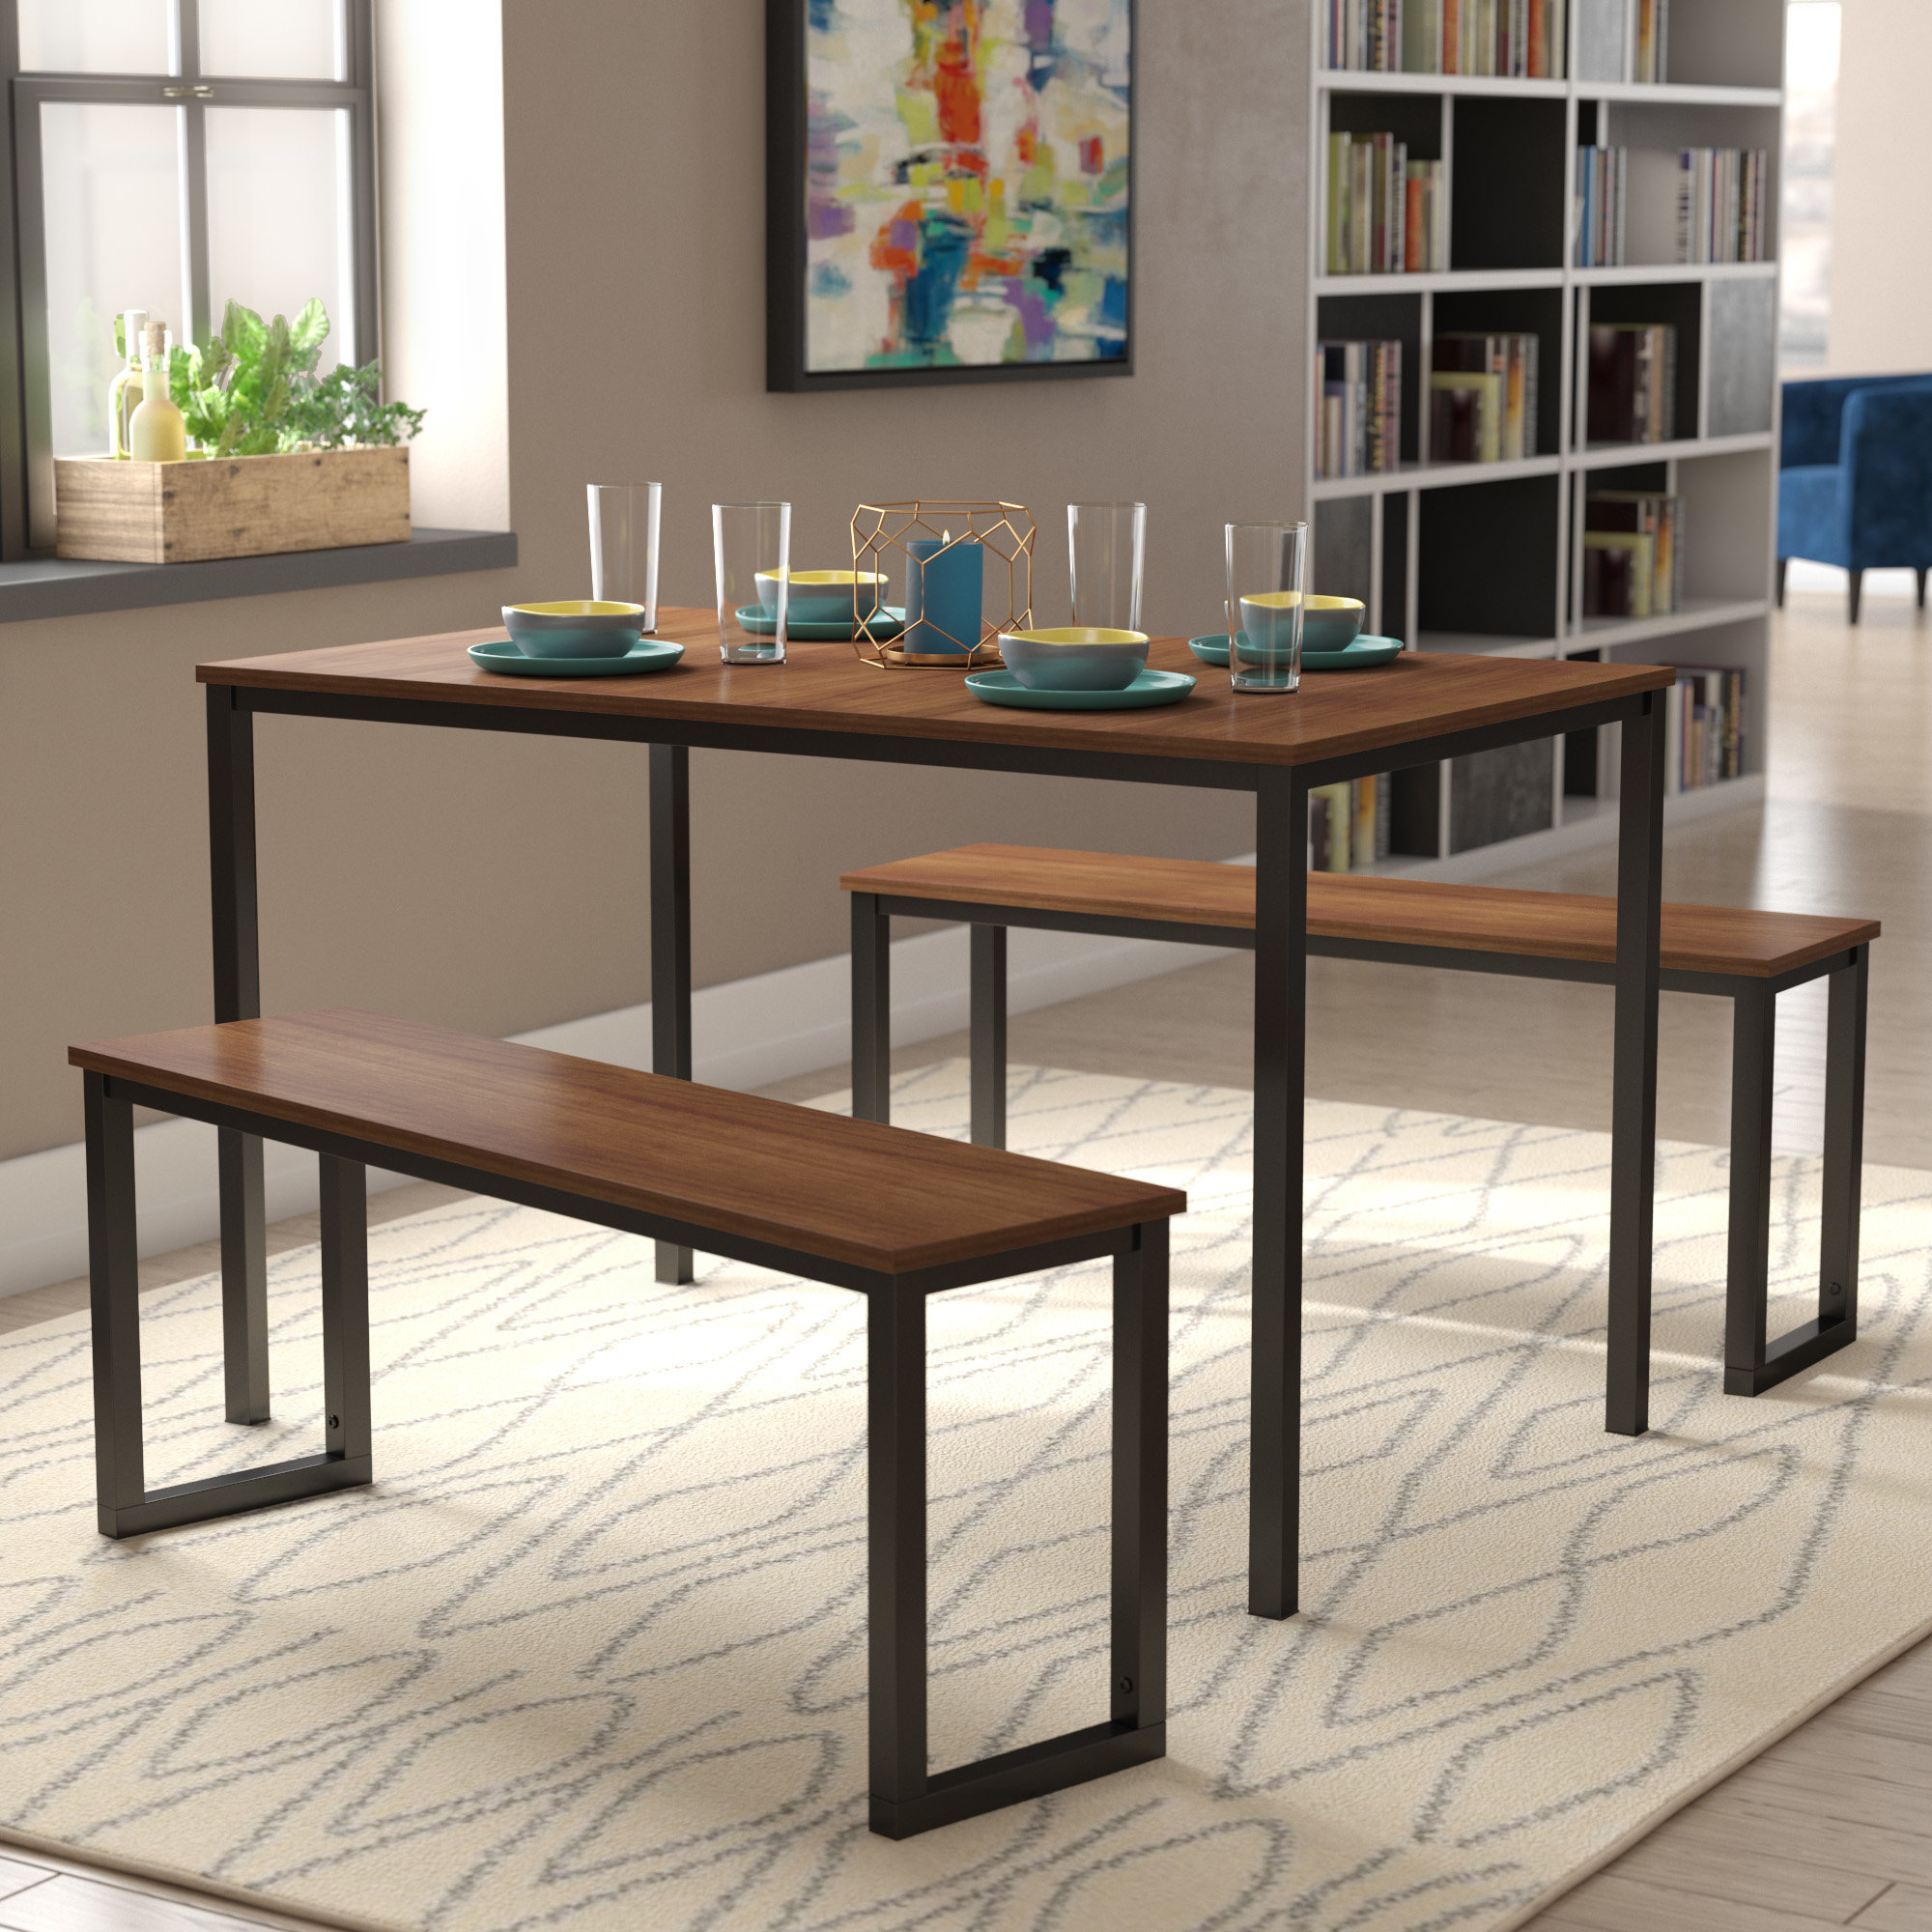 Fashionable Frida 3 Piece Dining Table Sets with Modern Rustic Interiors Frida 3 Piece Dining Table Set & Reviews